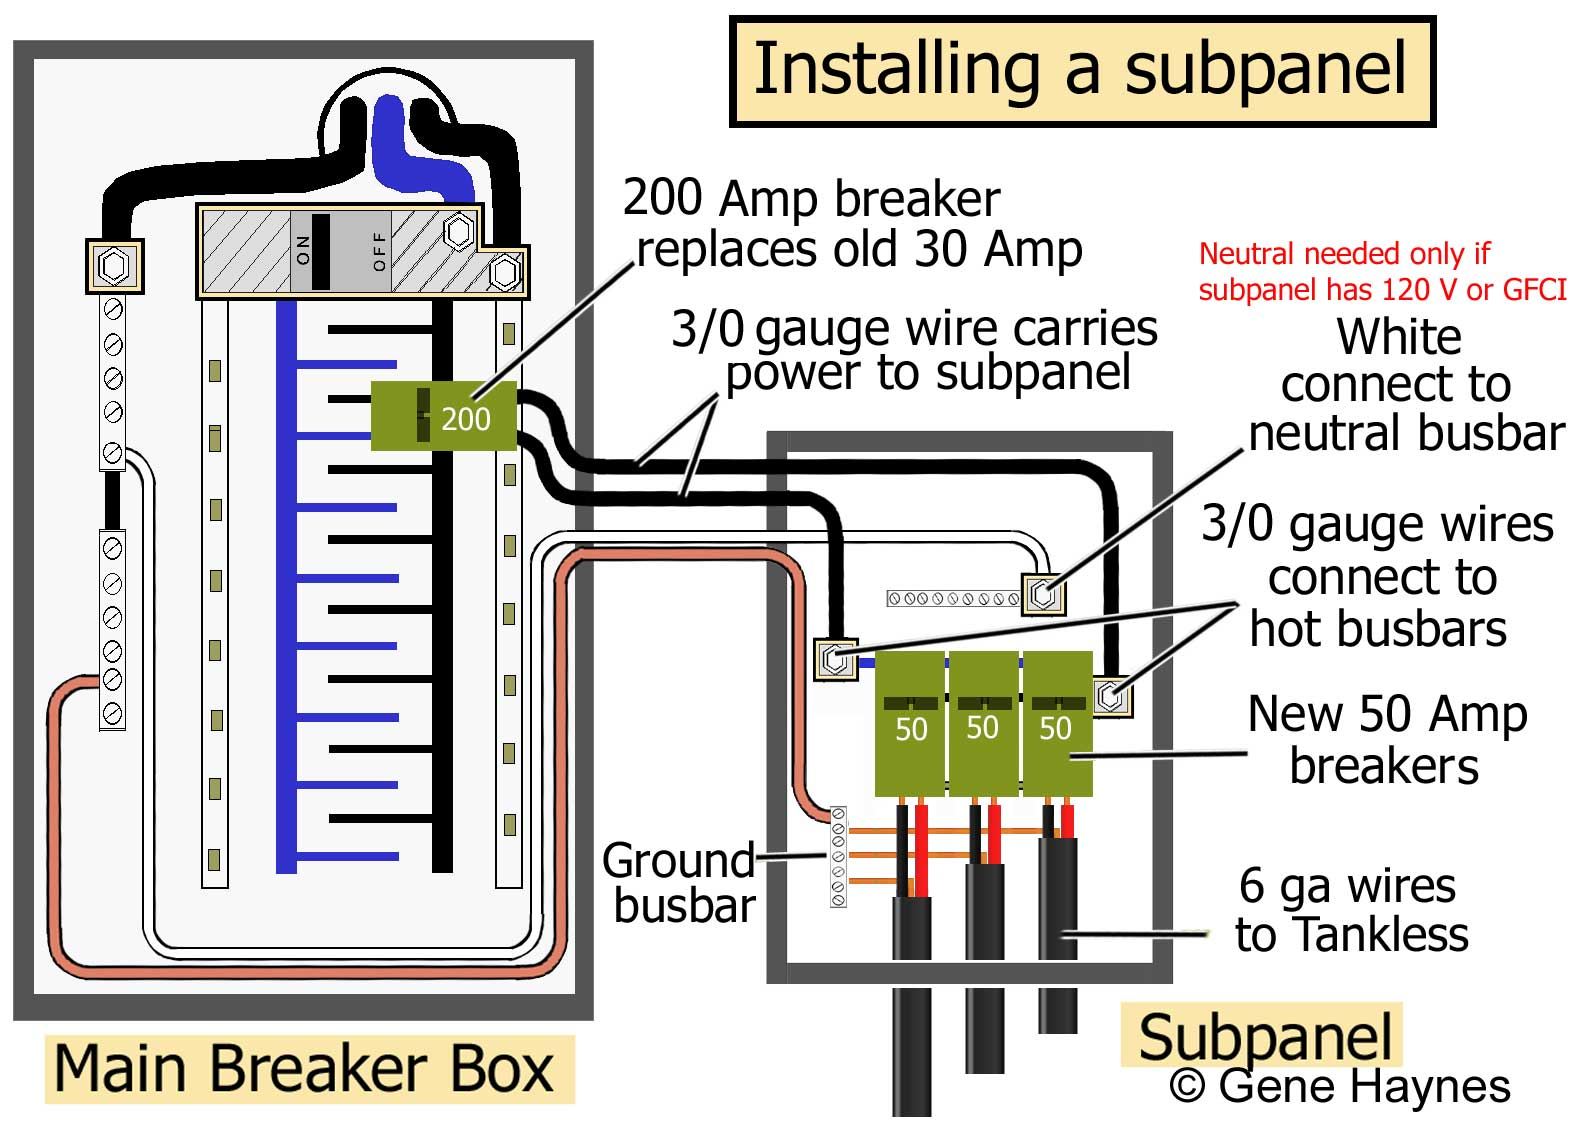 How to install a subpanel how to install main lug larger image 150 amp subpanel with 240volt and 120volt 150 amp breaker uses 20 wire neutral wire needed only if subpanel has 120volt breakers or gfci greentooth